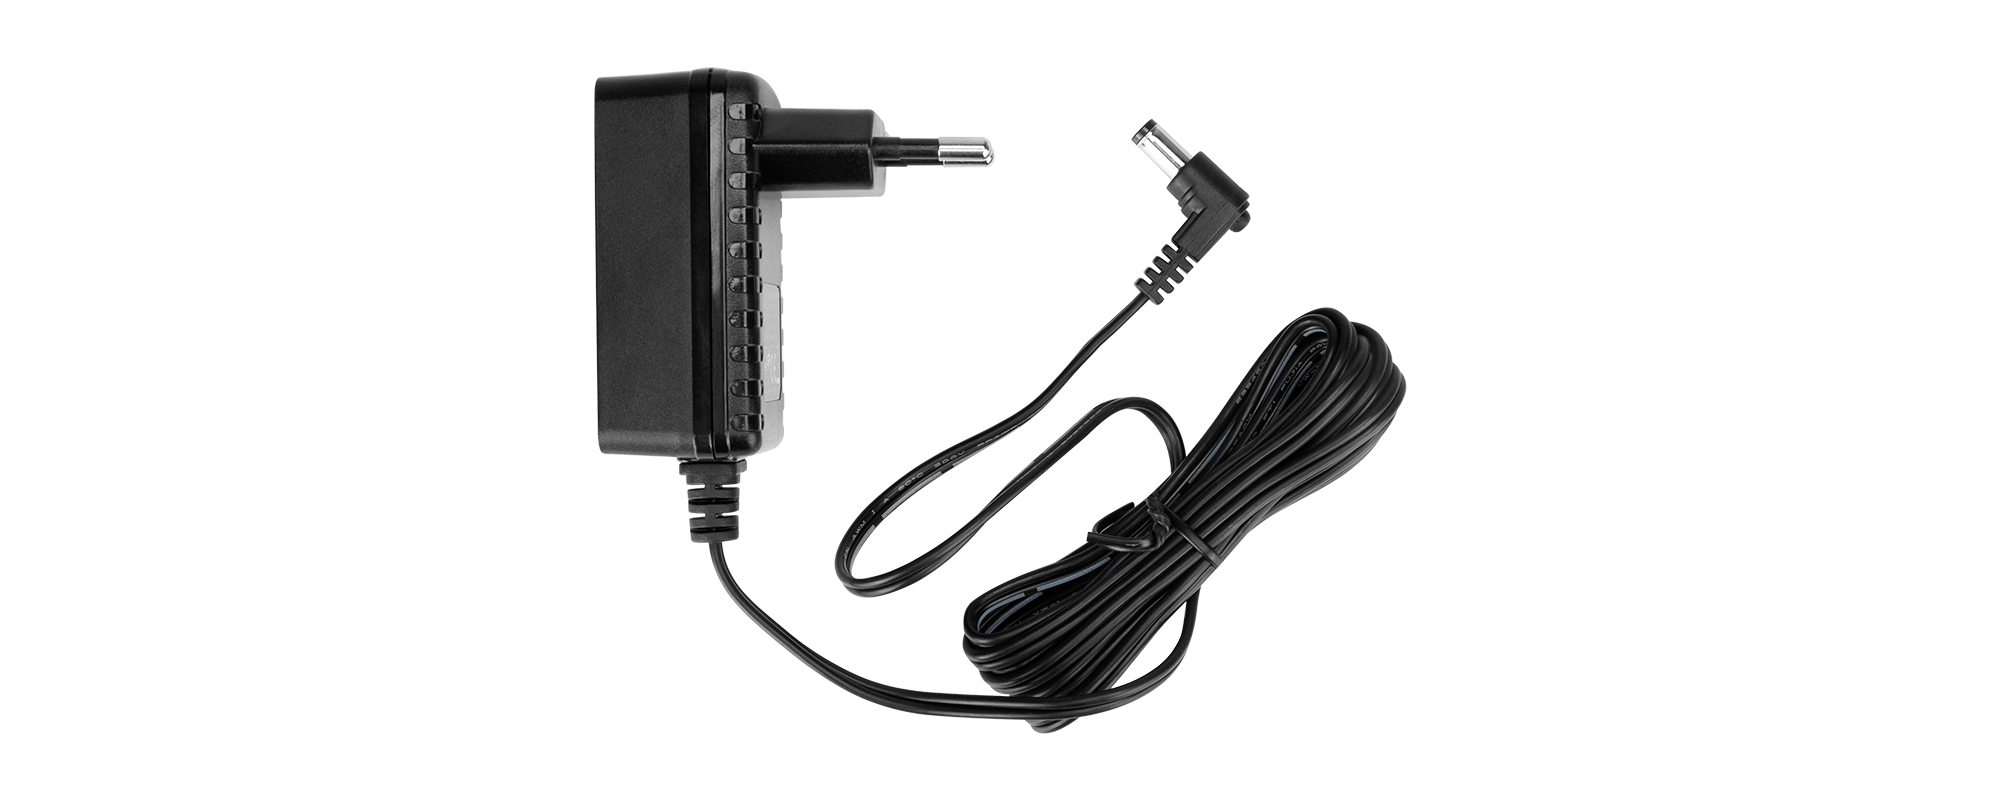 Yongnuo FJ-SW126G1202000E AC Power Adapter - 12 V / 2 A, DC 5.5 / 2.5 mm plug top view of entire kit